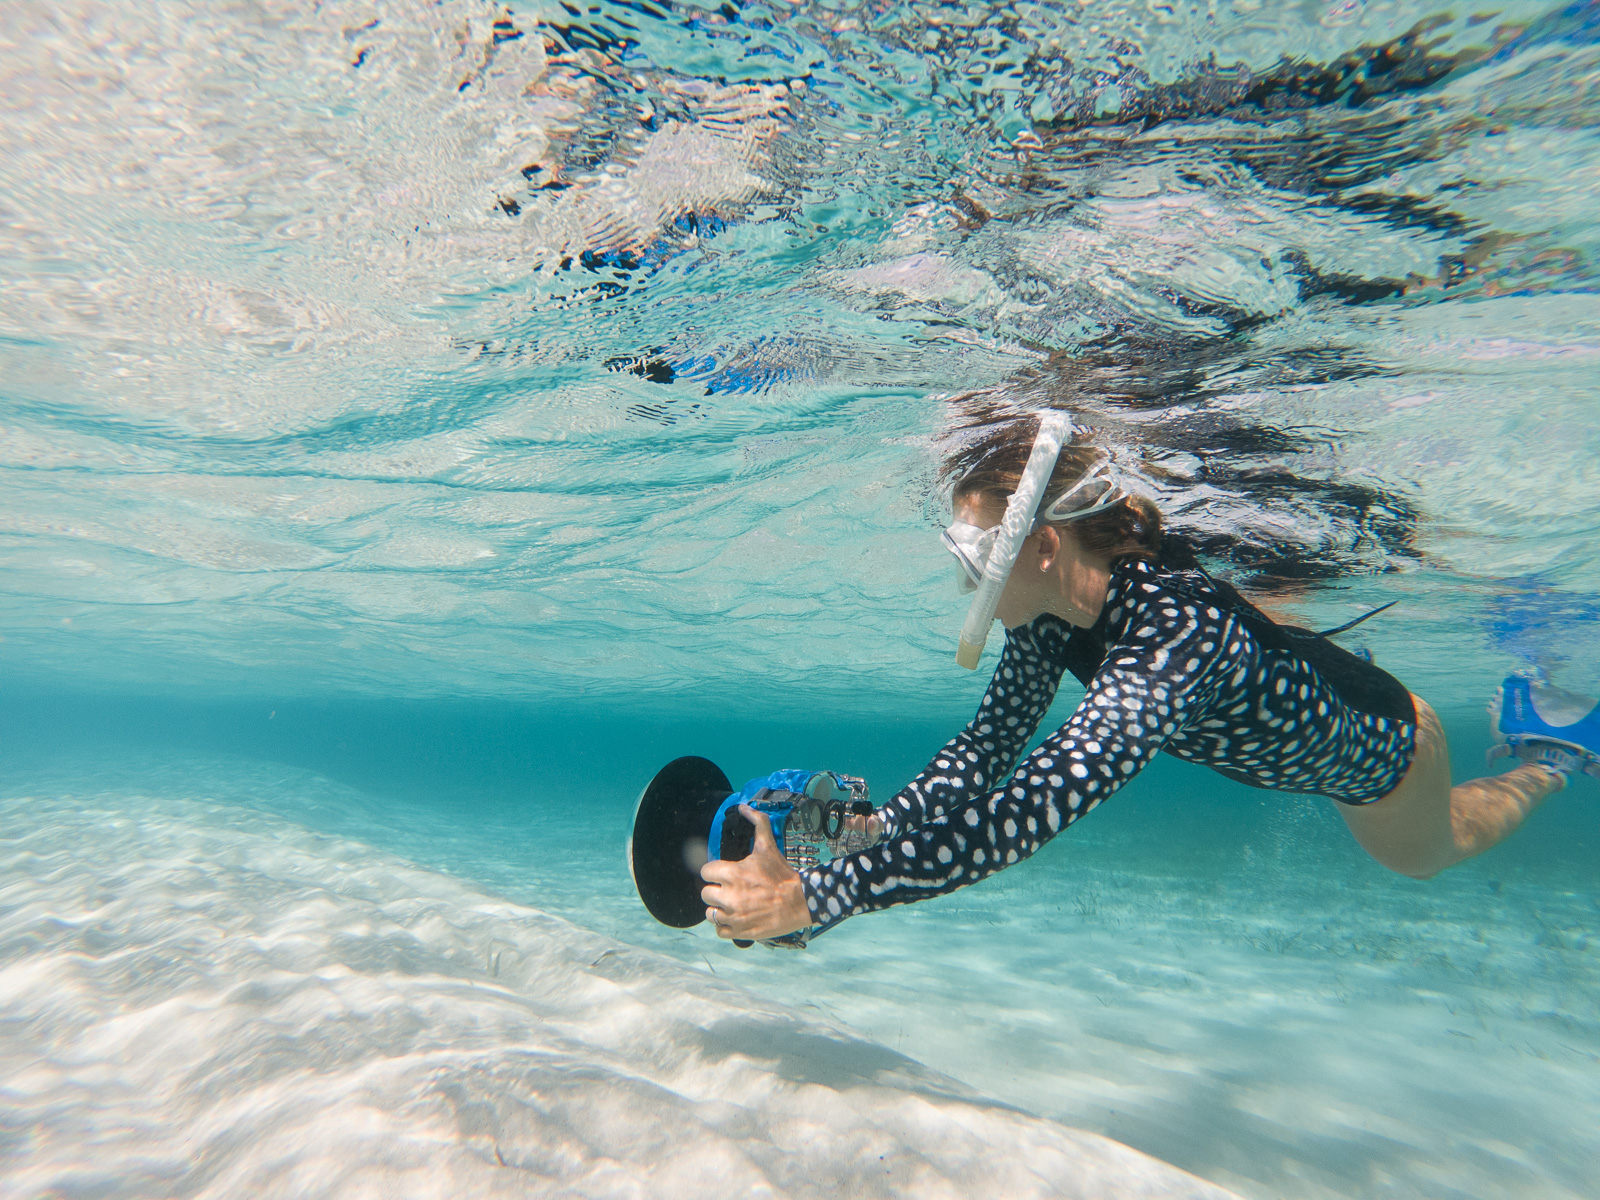 How to shoot in the ocean if you're not a natural water person